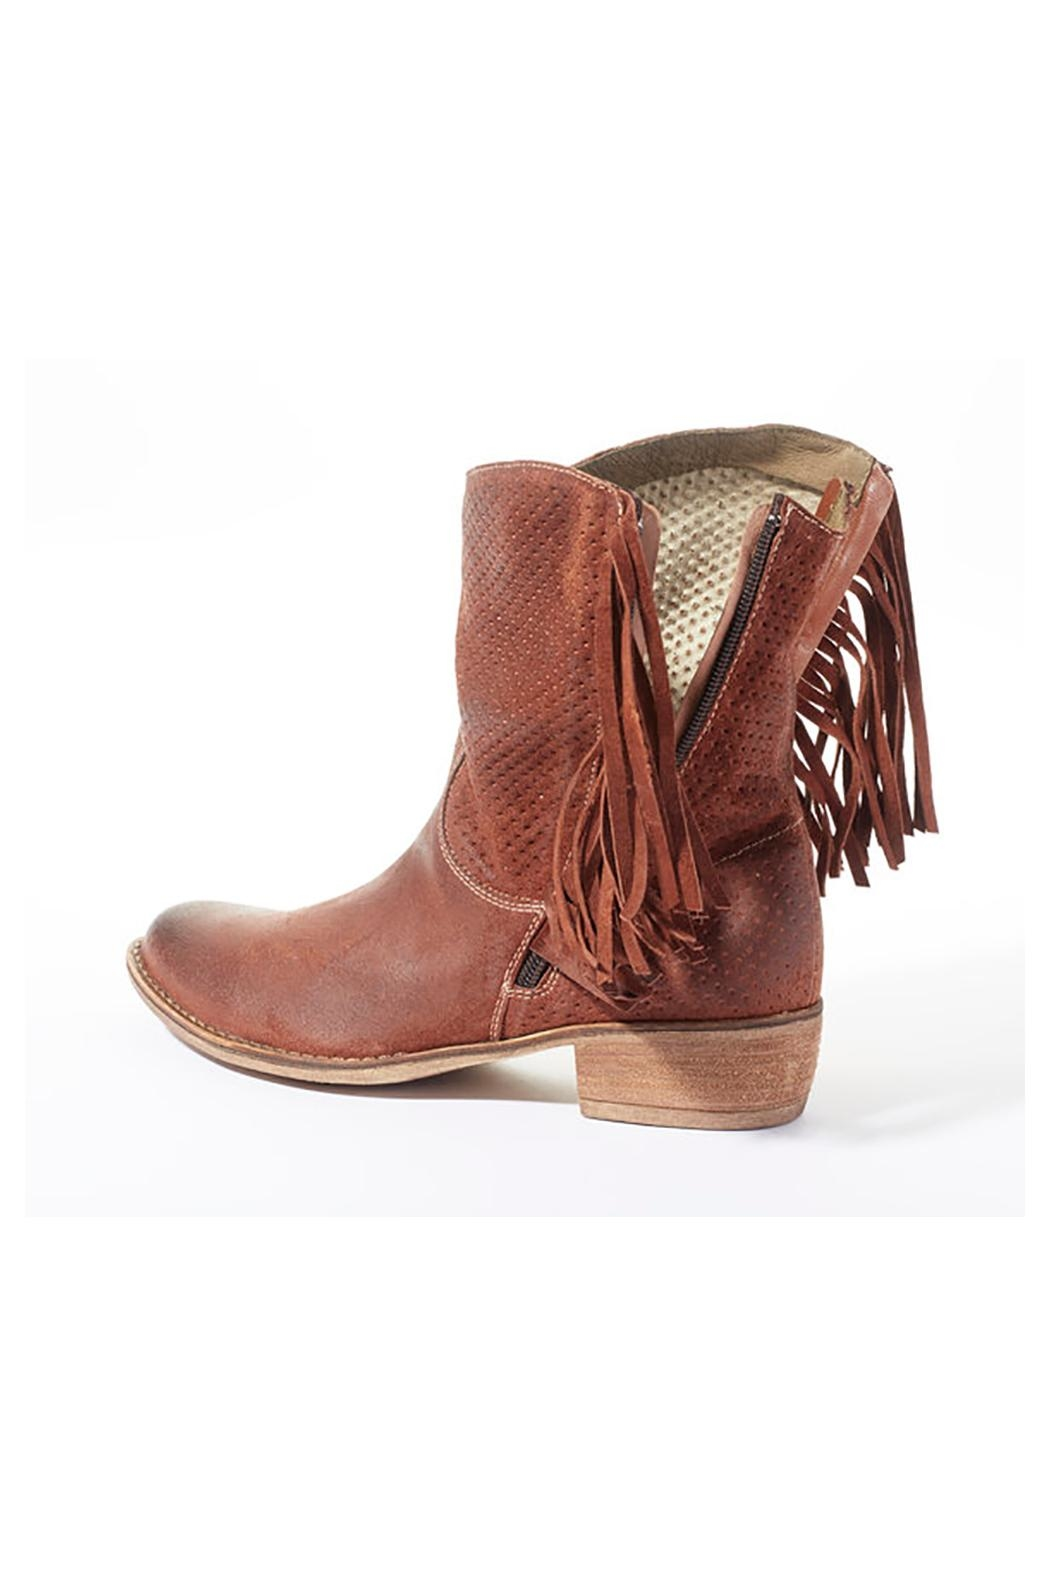 Rebel With Cause Fringe Leather Boots - Back Cropped Image